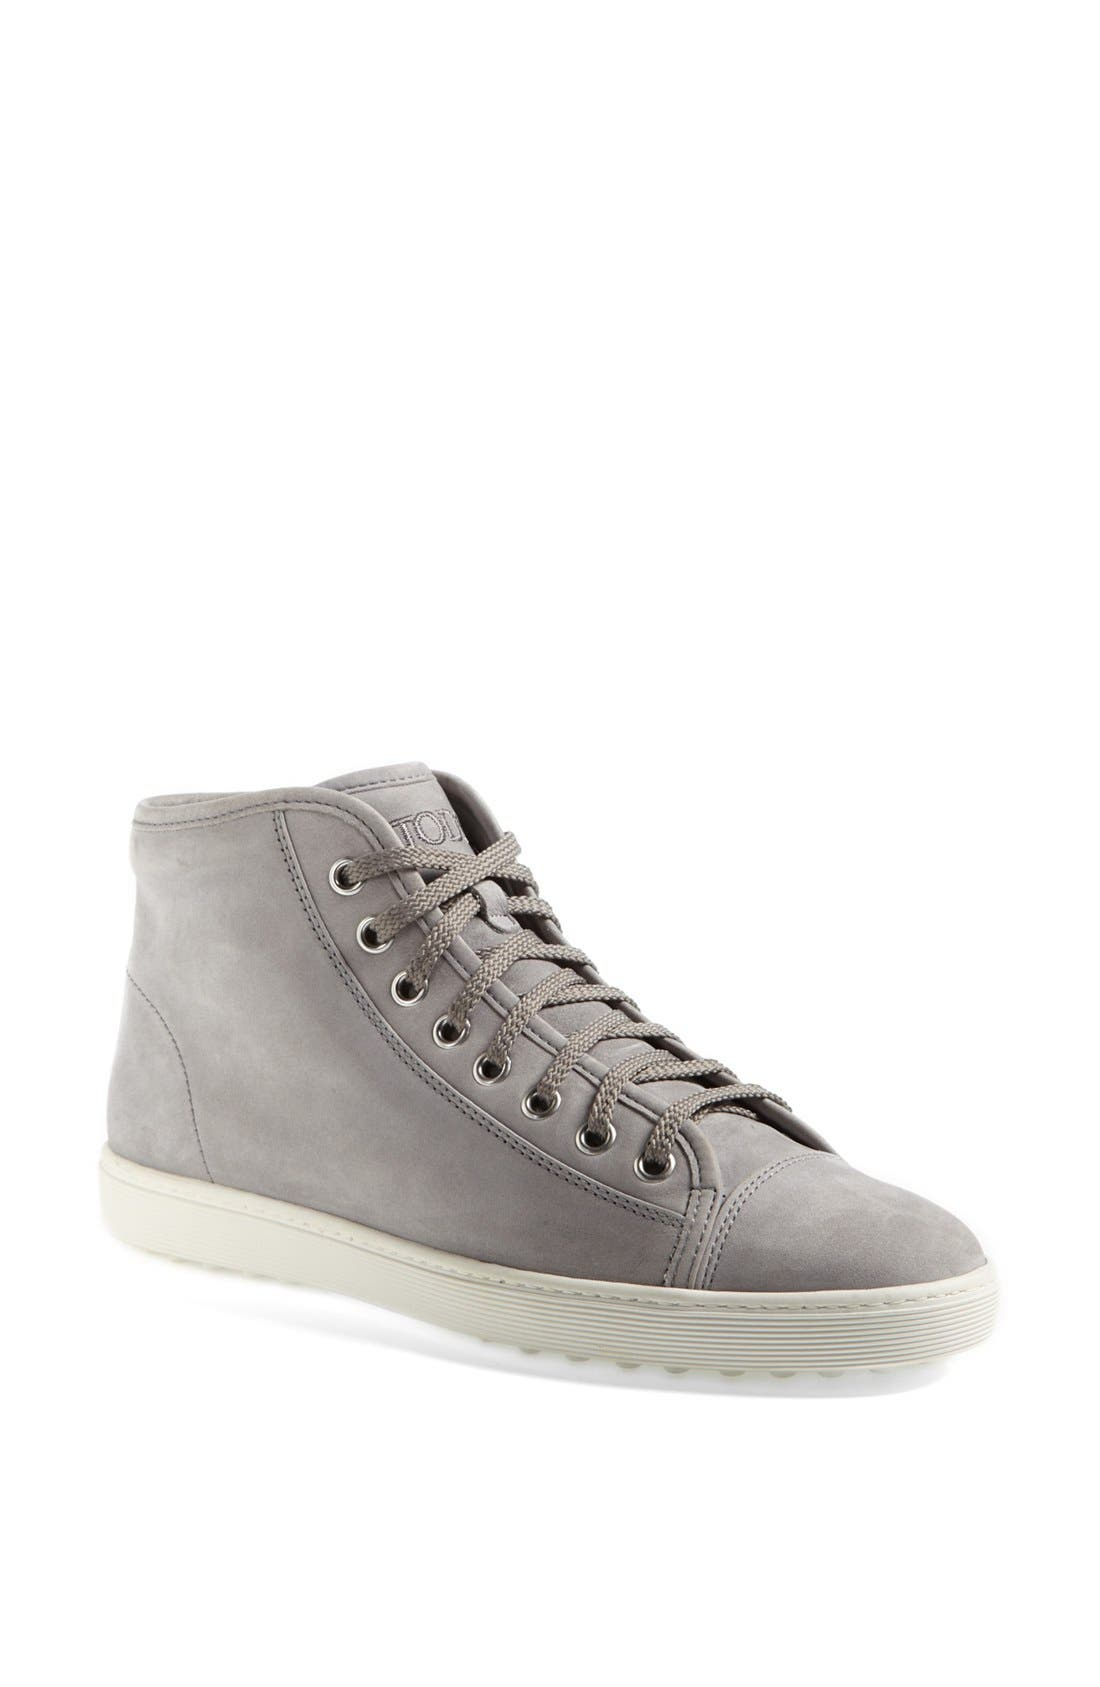 Alternate Image 1 Selected - Tod's 'Sport Cassetta' High Top Sneaker